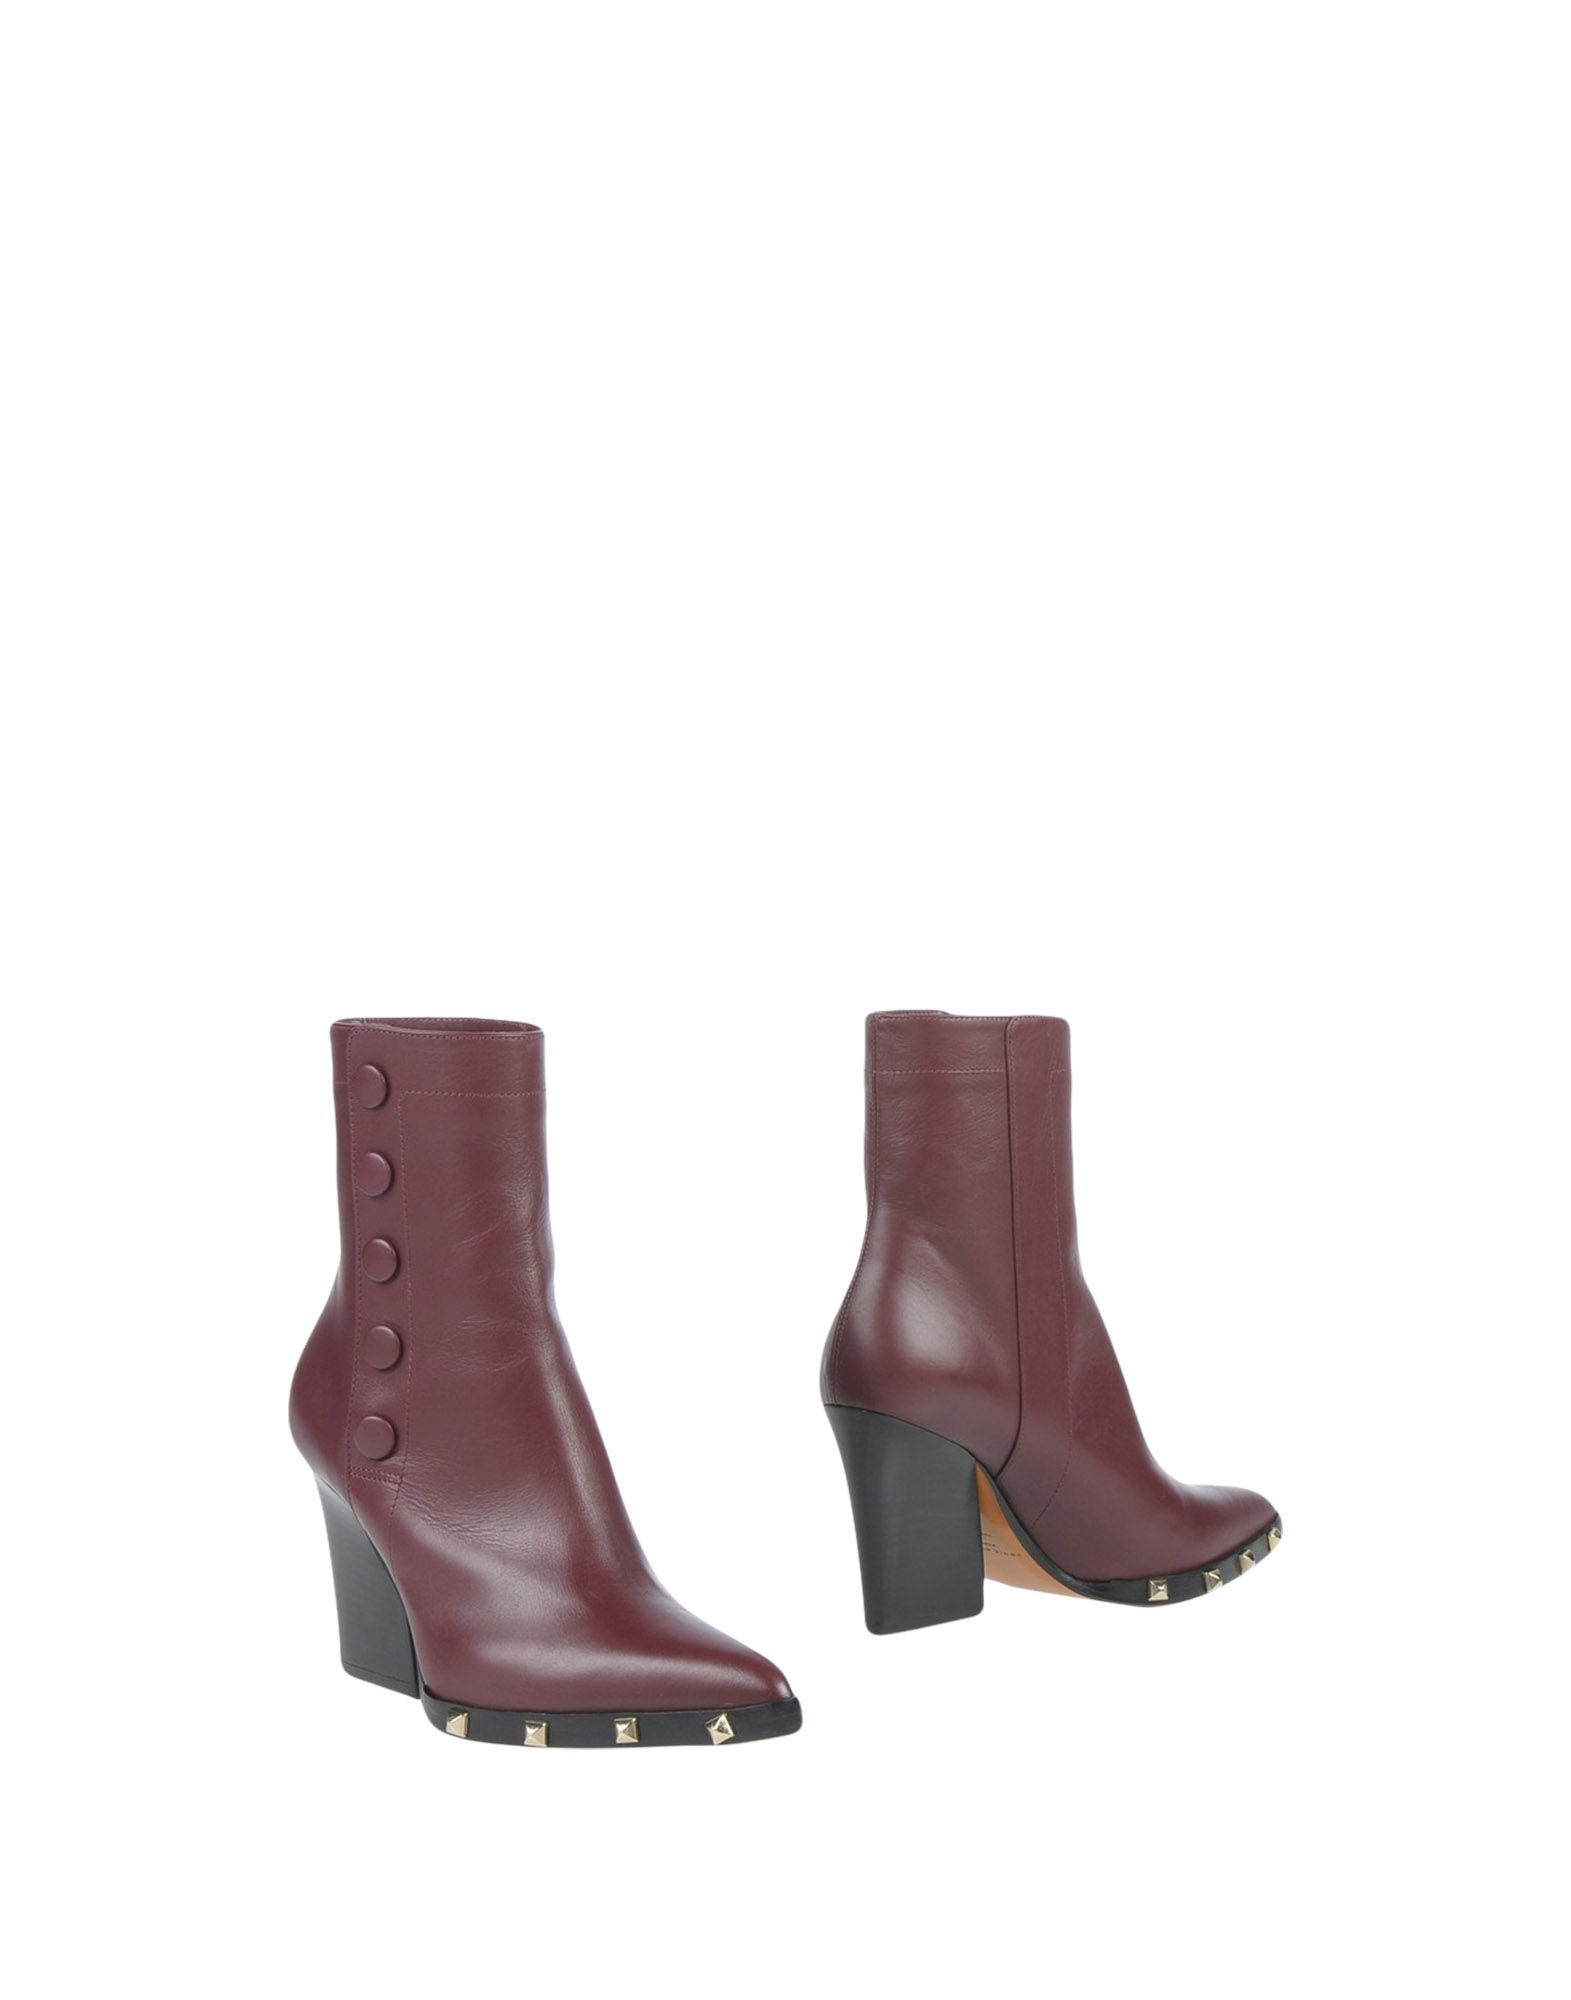 Bottine Sonia Rykiel Femme - Bottines Sonia Rykiel sur